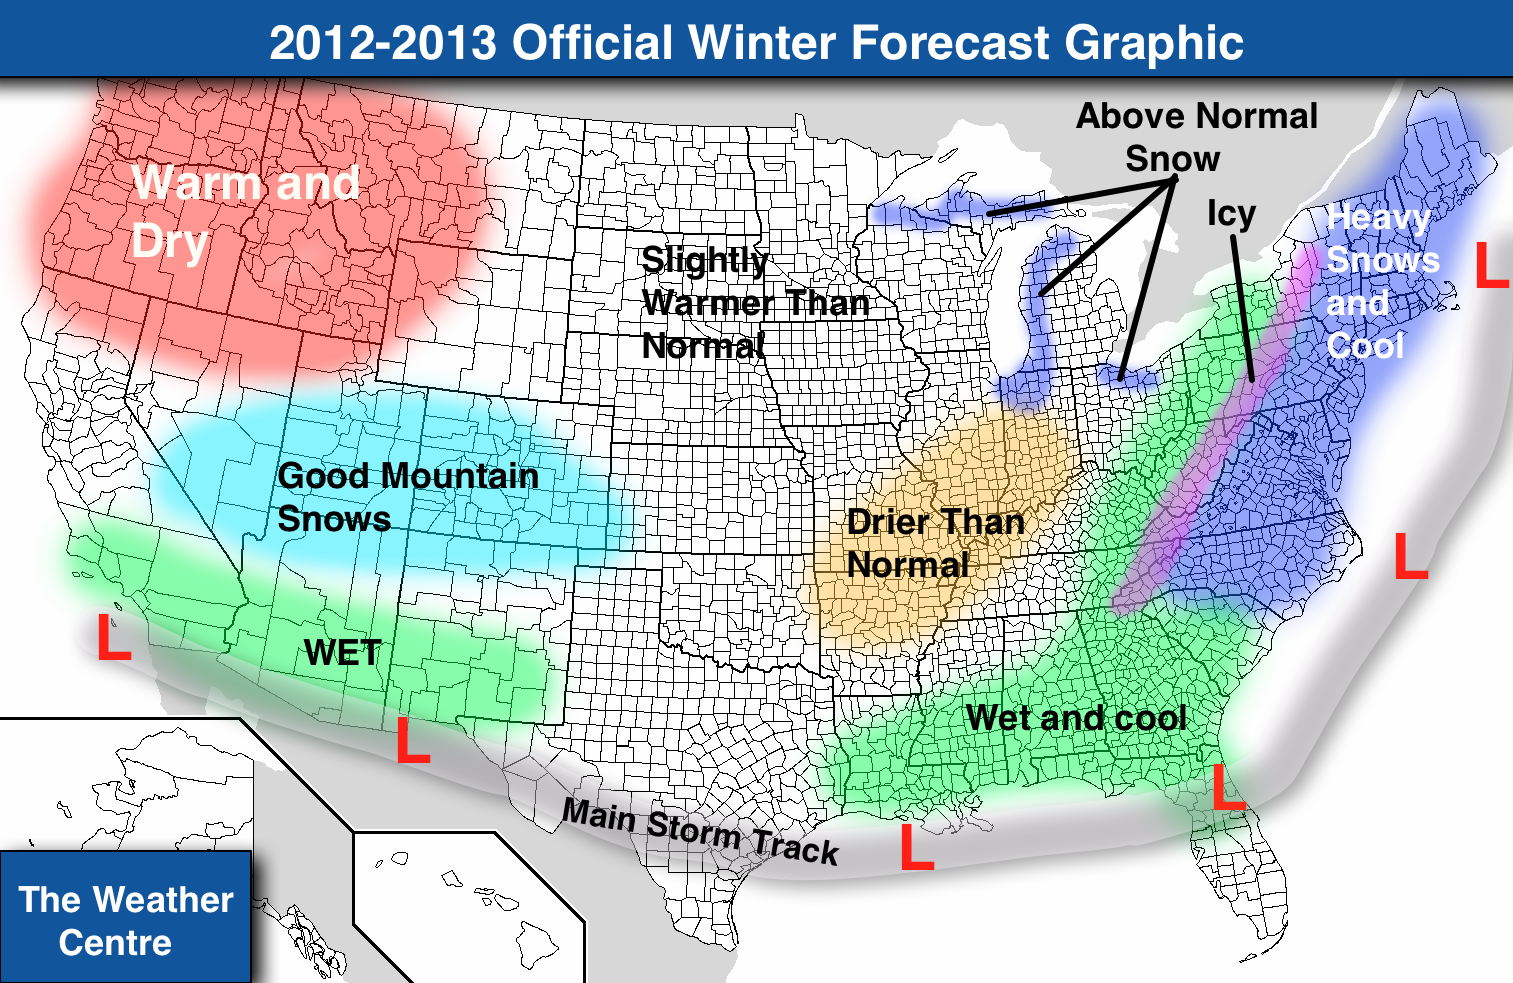 Today's Featured Post: Updated Thoughts on 2014-2015 Winter Outlook